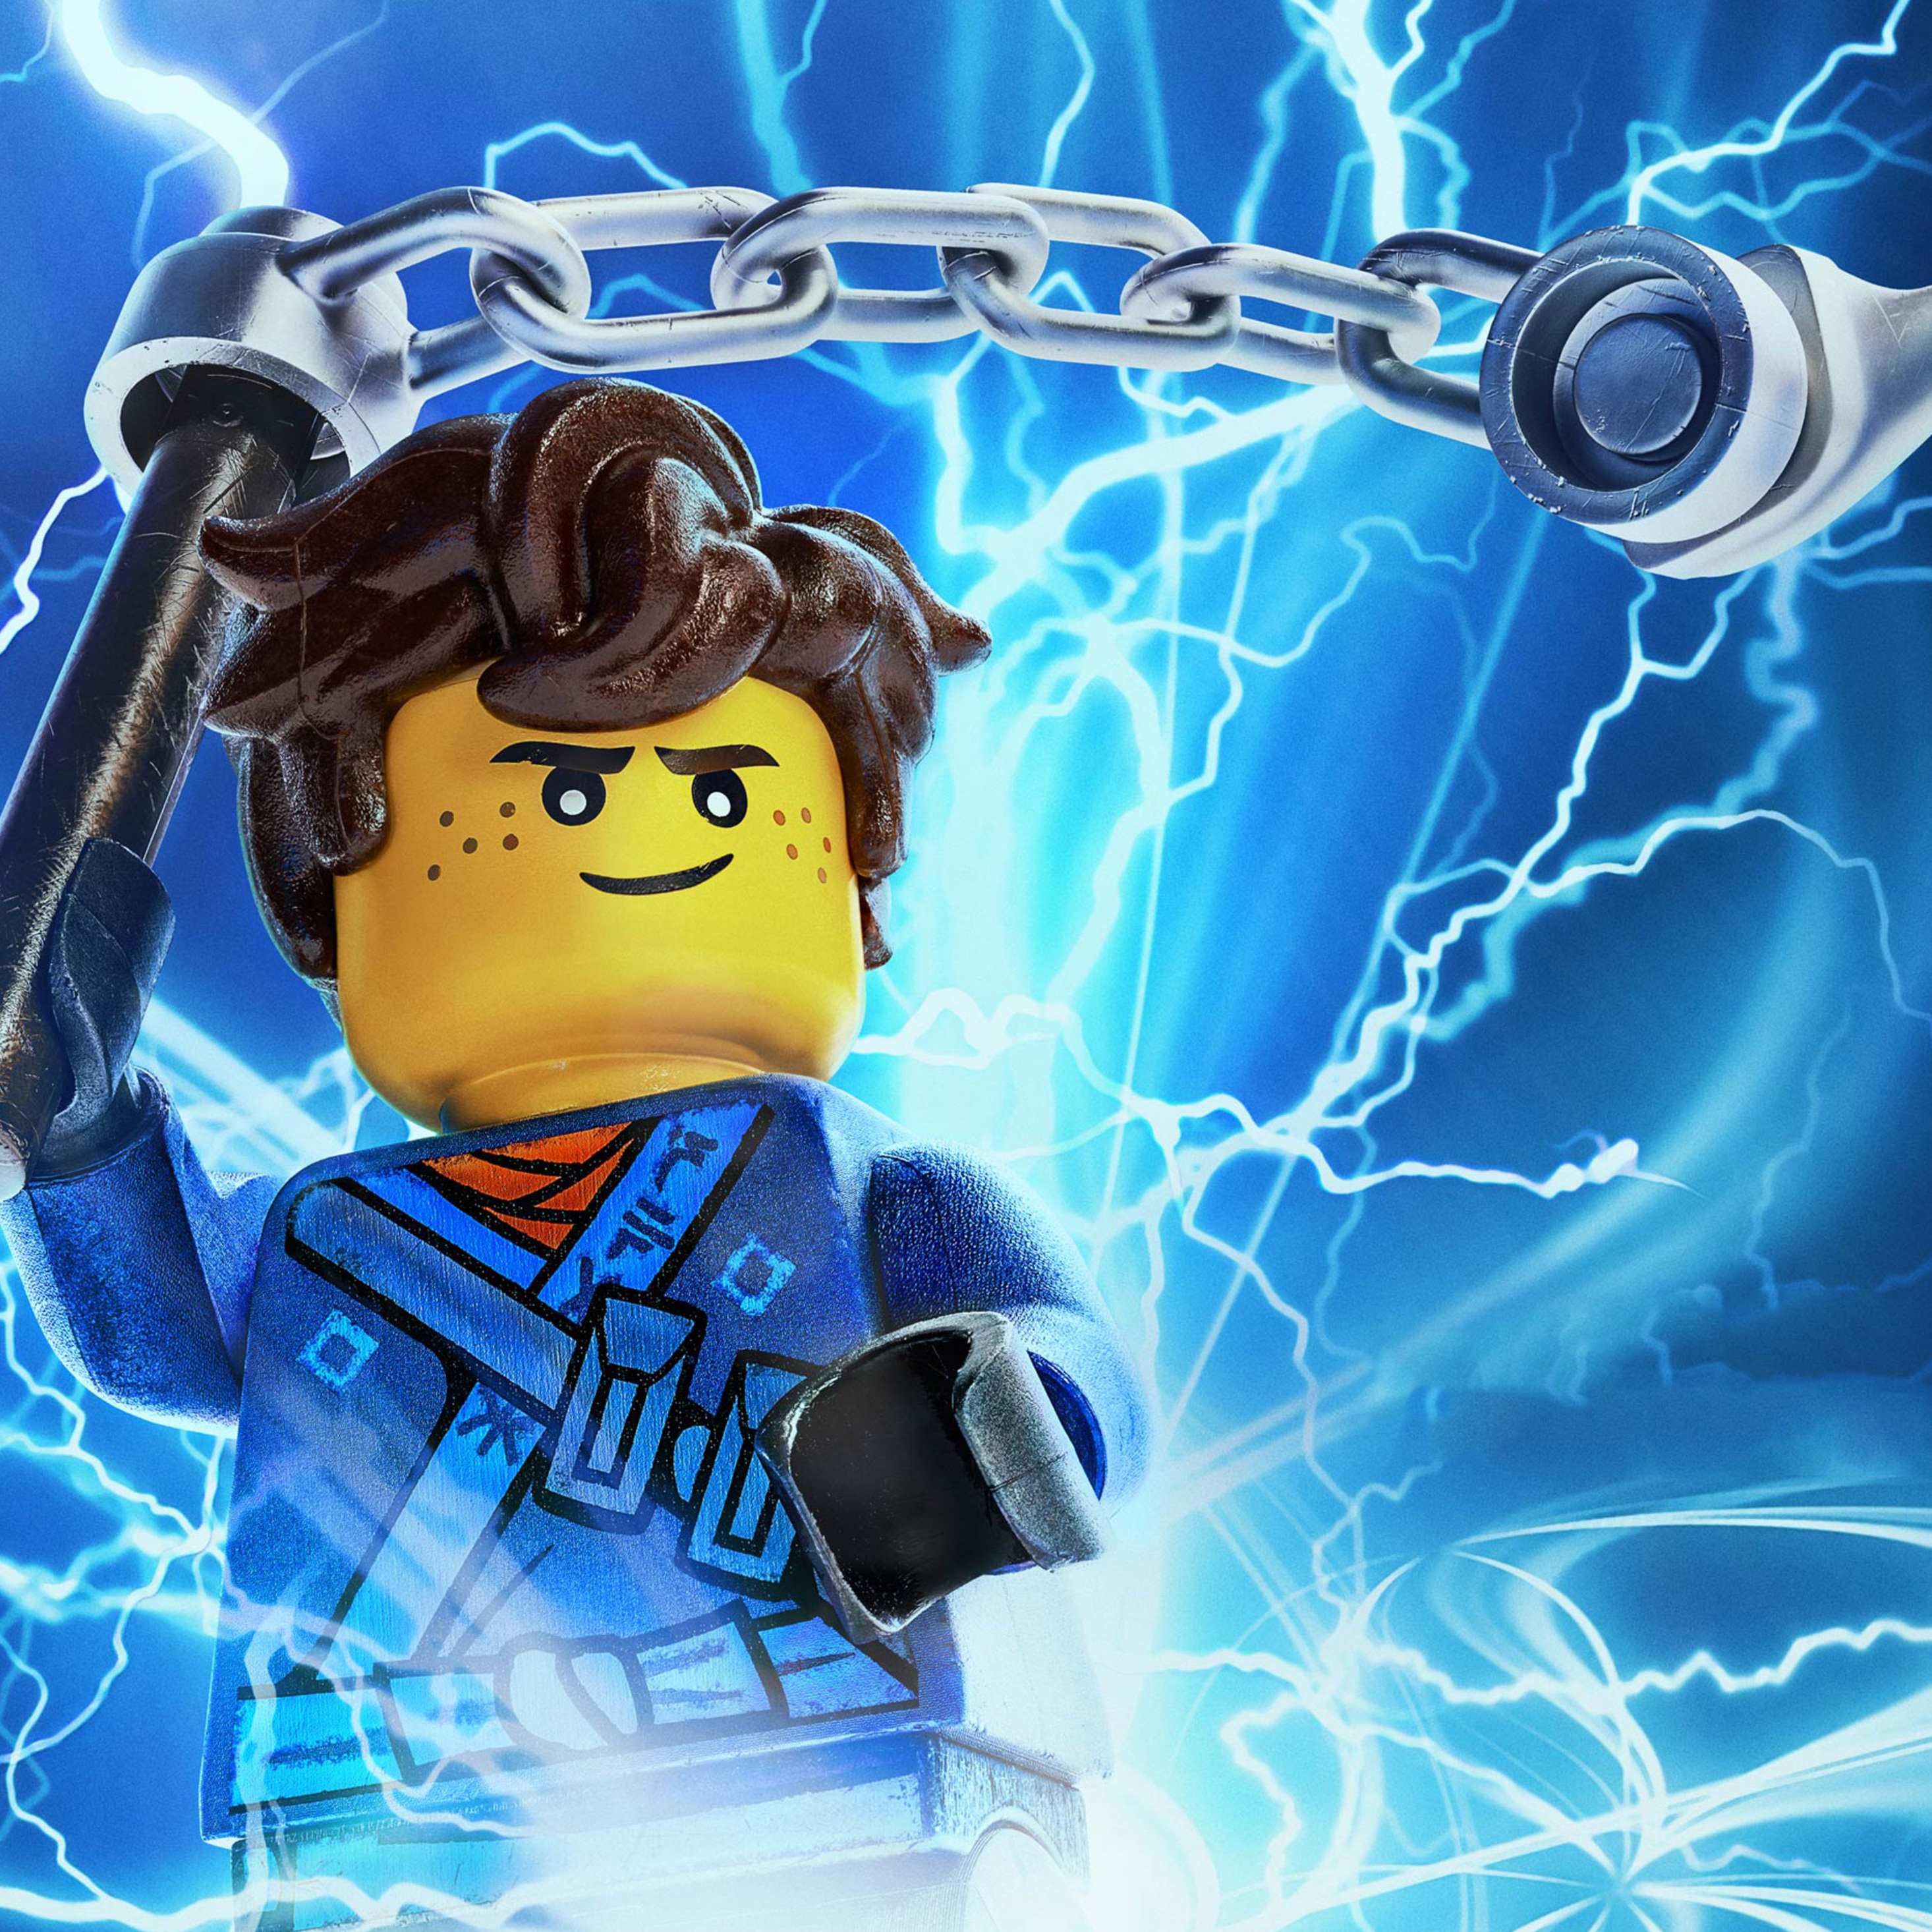 2932x2932 Jay Be The Lego Ninjago Movie Ipad Pro Retina Display Hd 4k Wallpapers Images Backgrounds Photos And Pictures